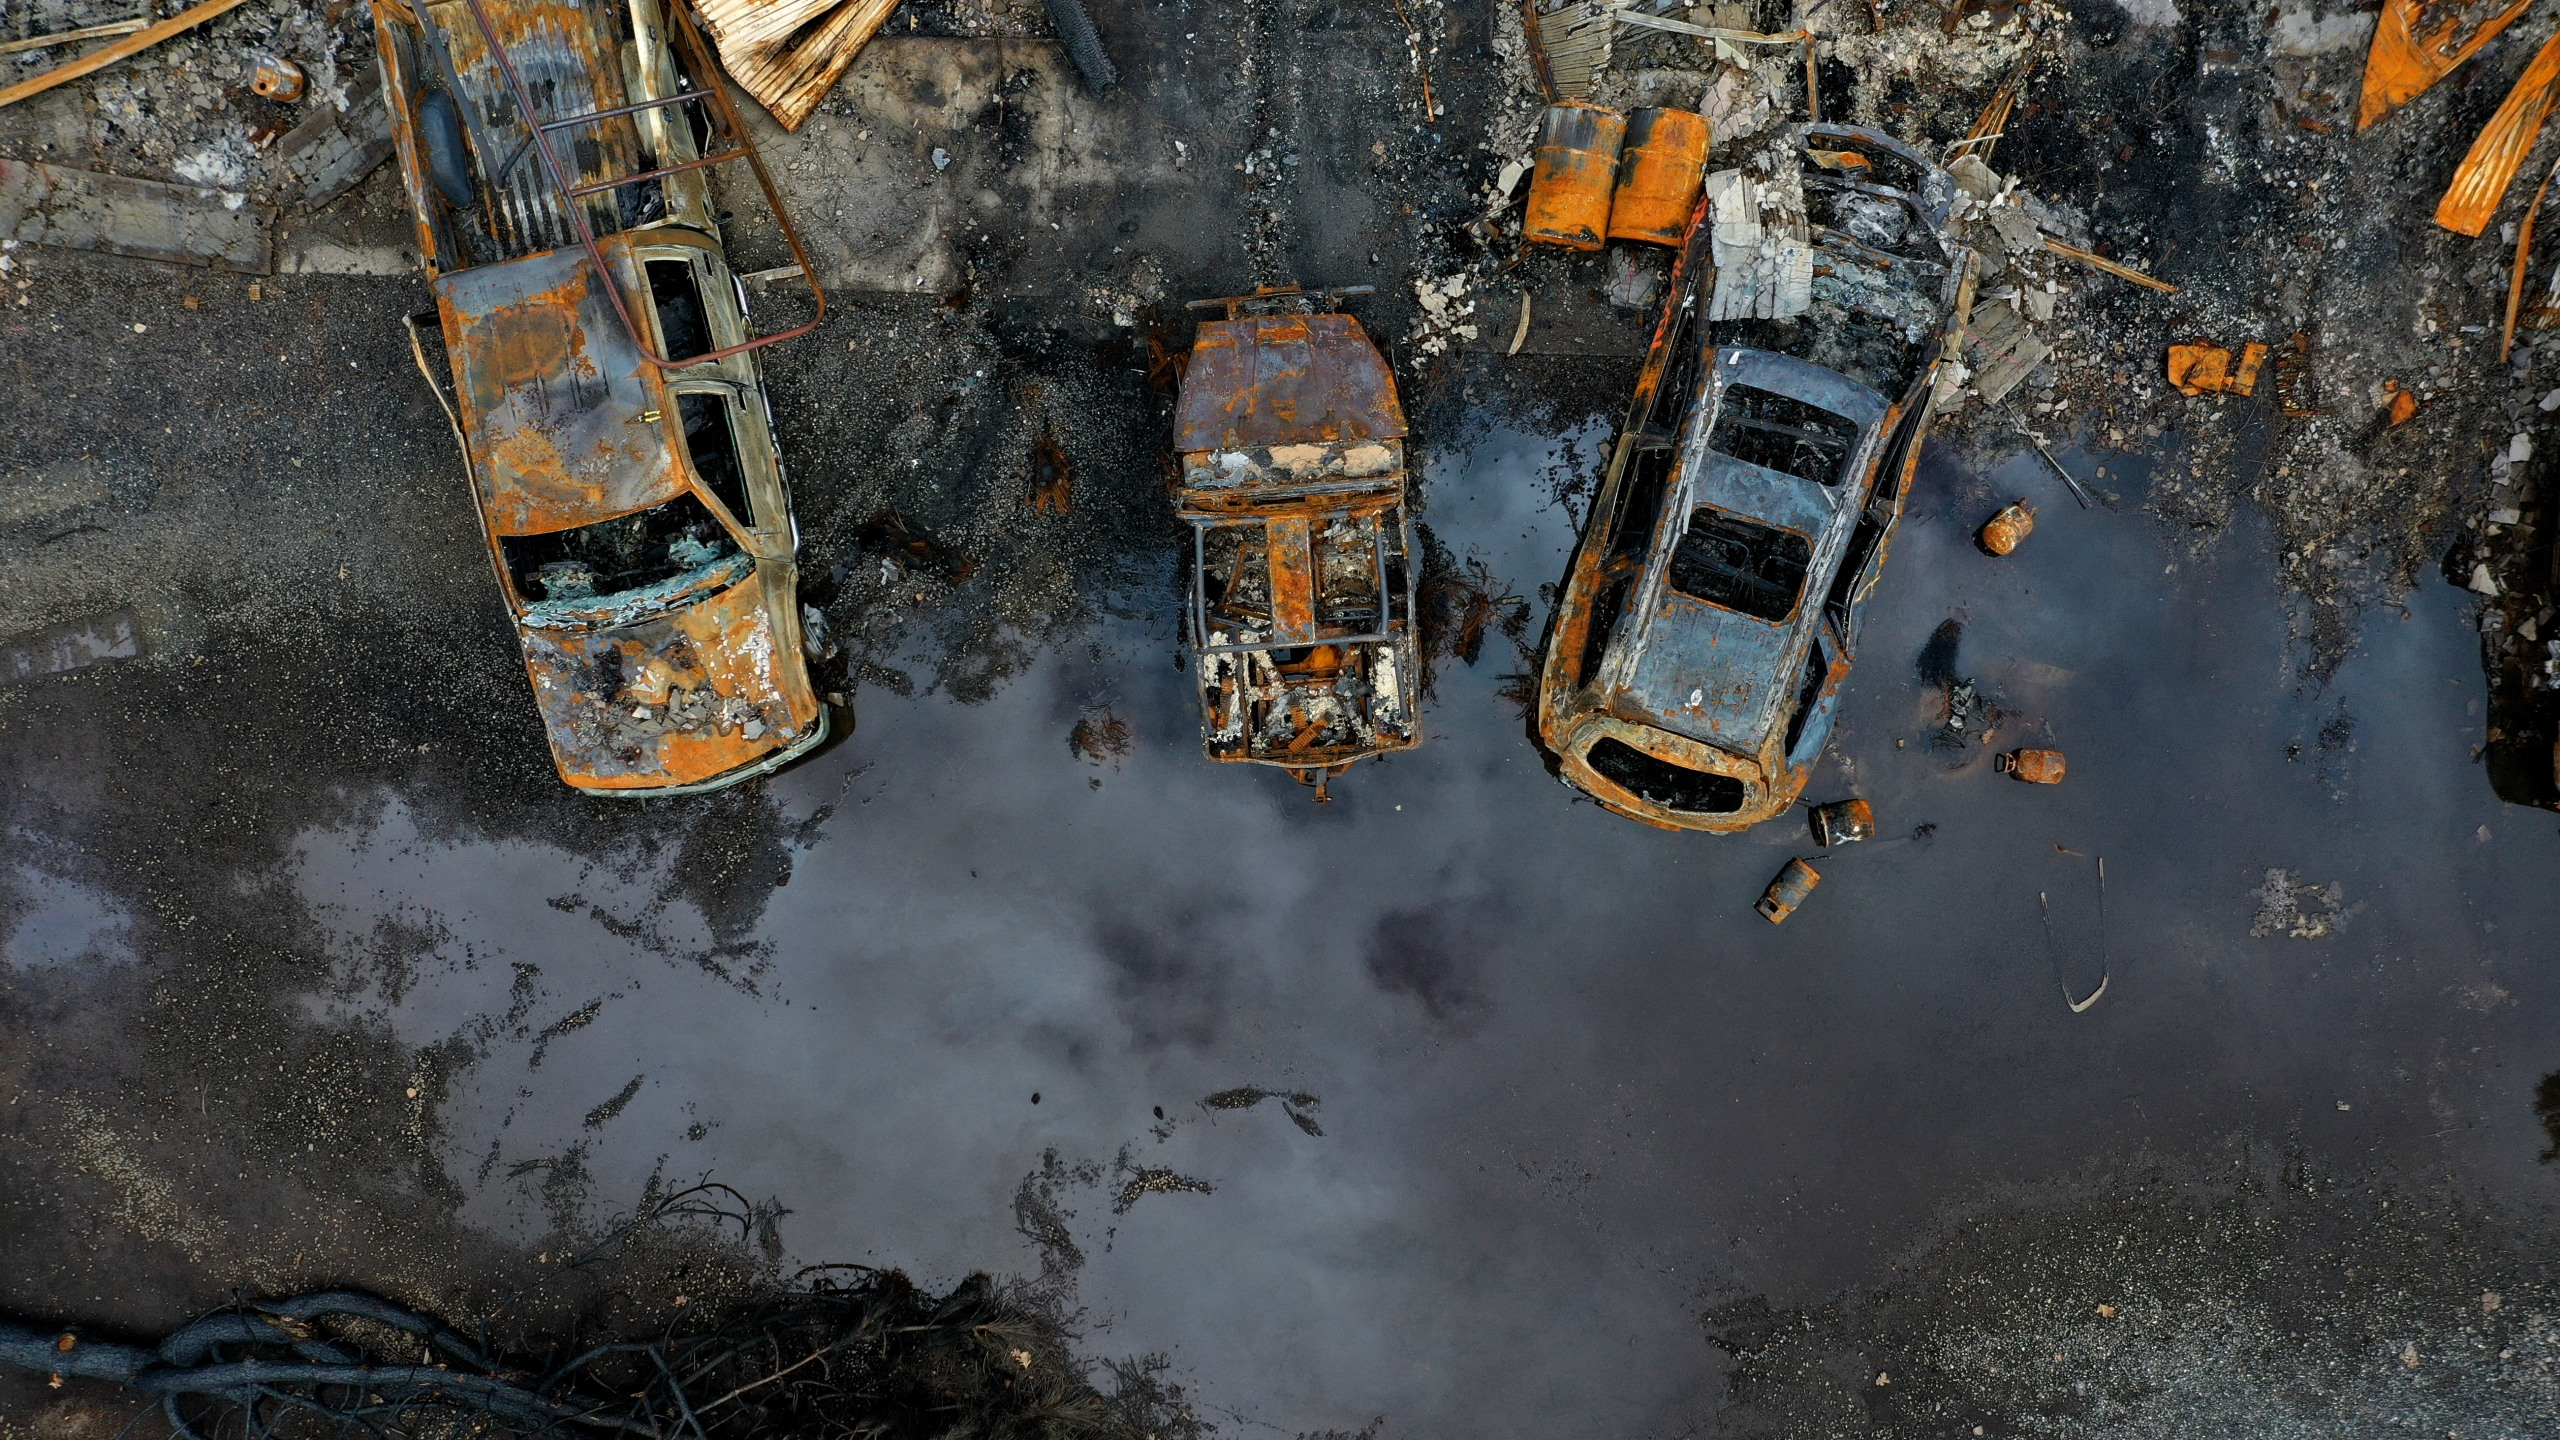 Cars destroyed by the Camp Fire in Paradise are seen in an aerial view on Feb. 11, 2019, three months after the deadly and destructive blaze. (Credit: Justin Sullivan / Getty Images)